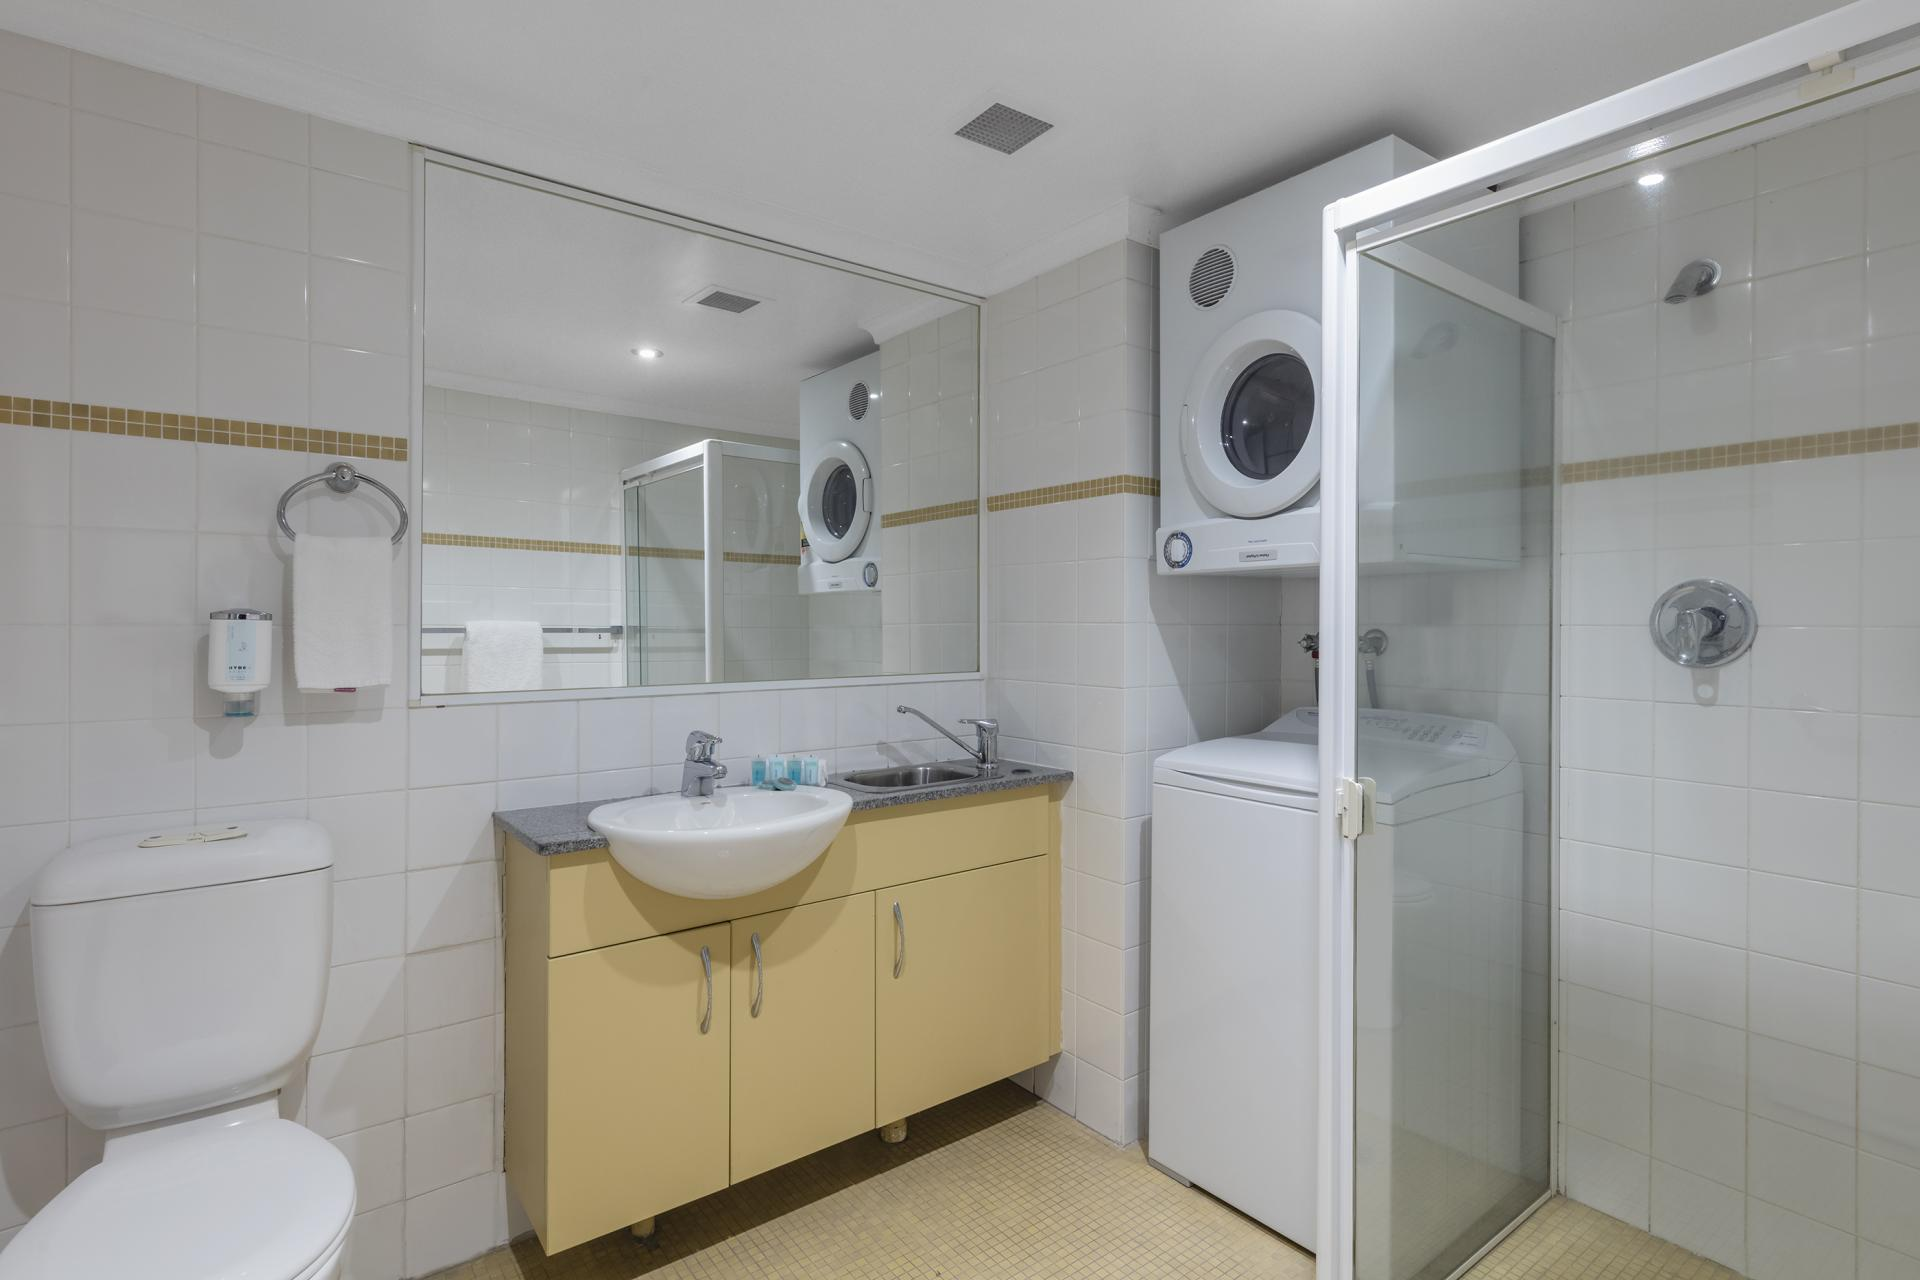 Laundry room at Nesuto Chippendale Apartment Hotel, Chippendale, Sydney